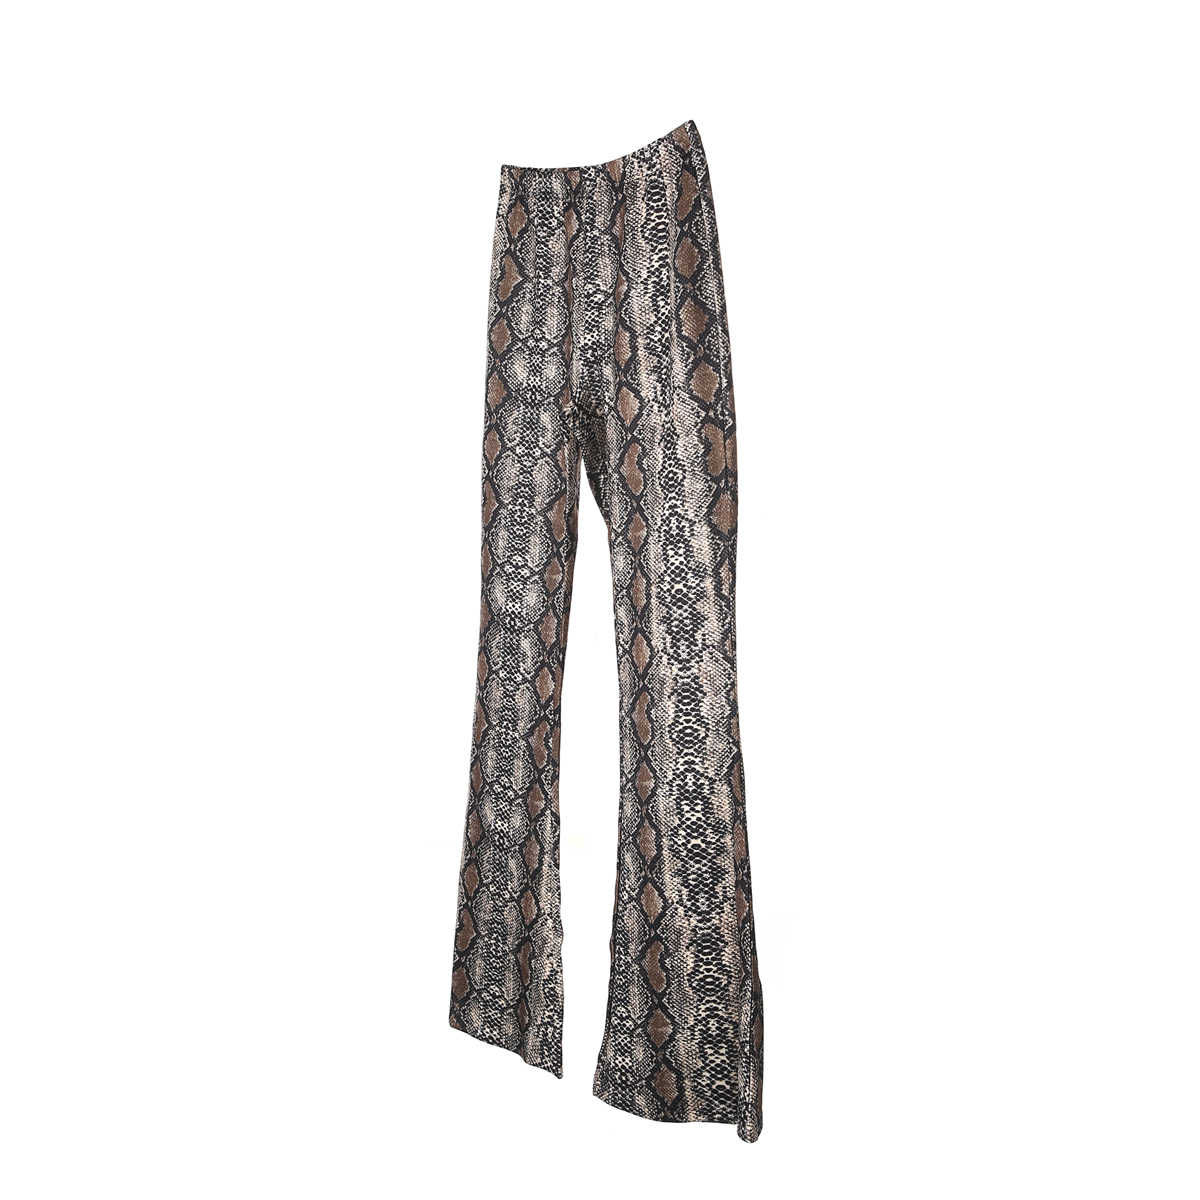 adc890ab6f4b ... Flare Pants Women Fashion Long Snake Skin Python Printed Trousers High  Waist Stretchy Wide Leg Pant